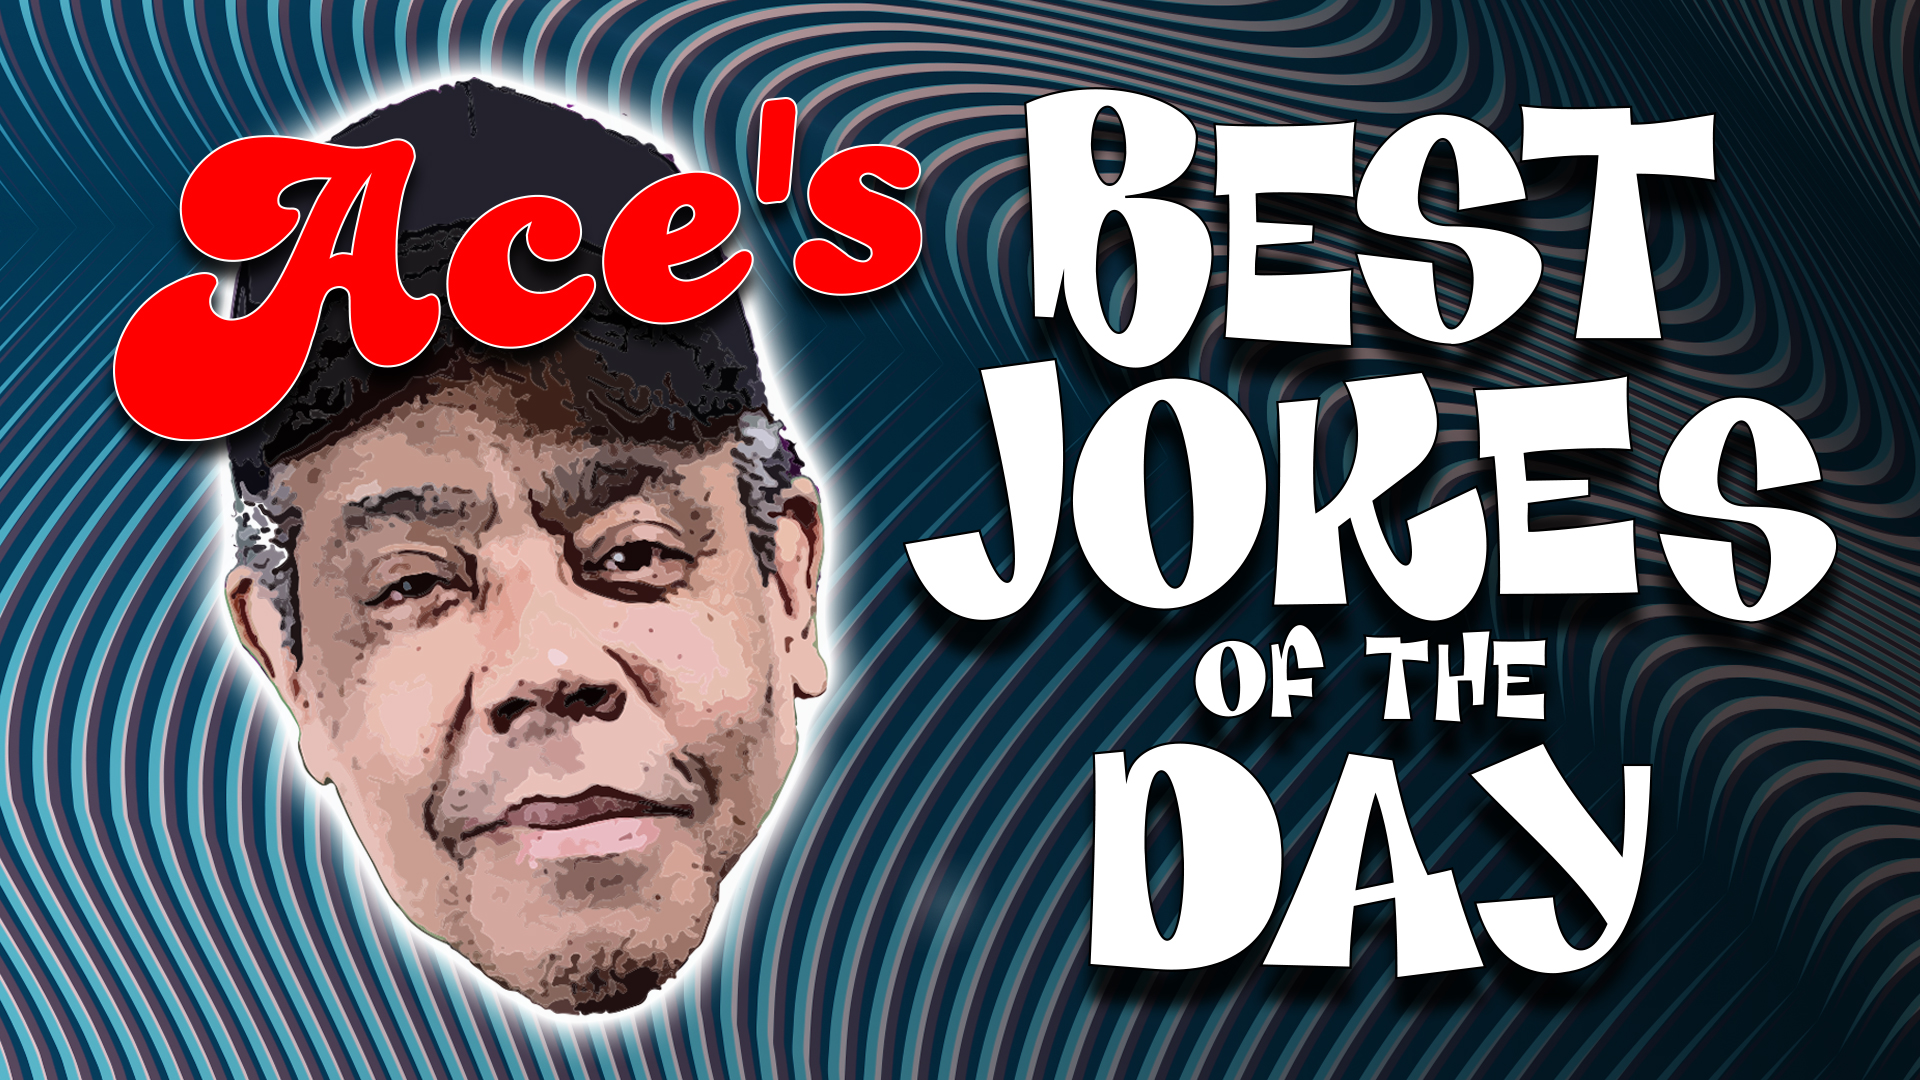 Ace Cosby's Joke of the Day Strikeout